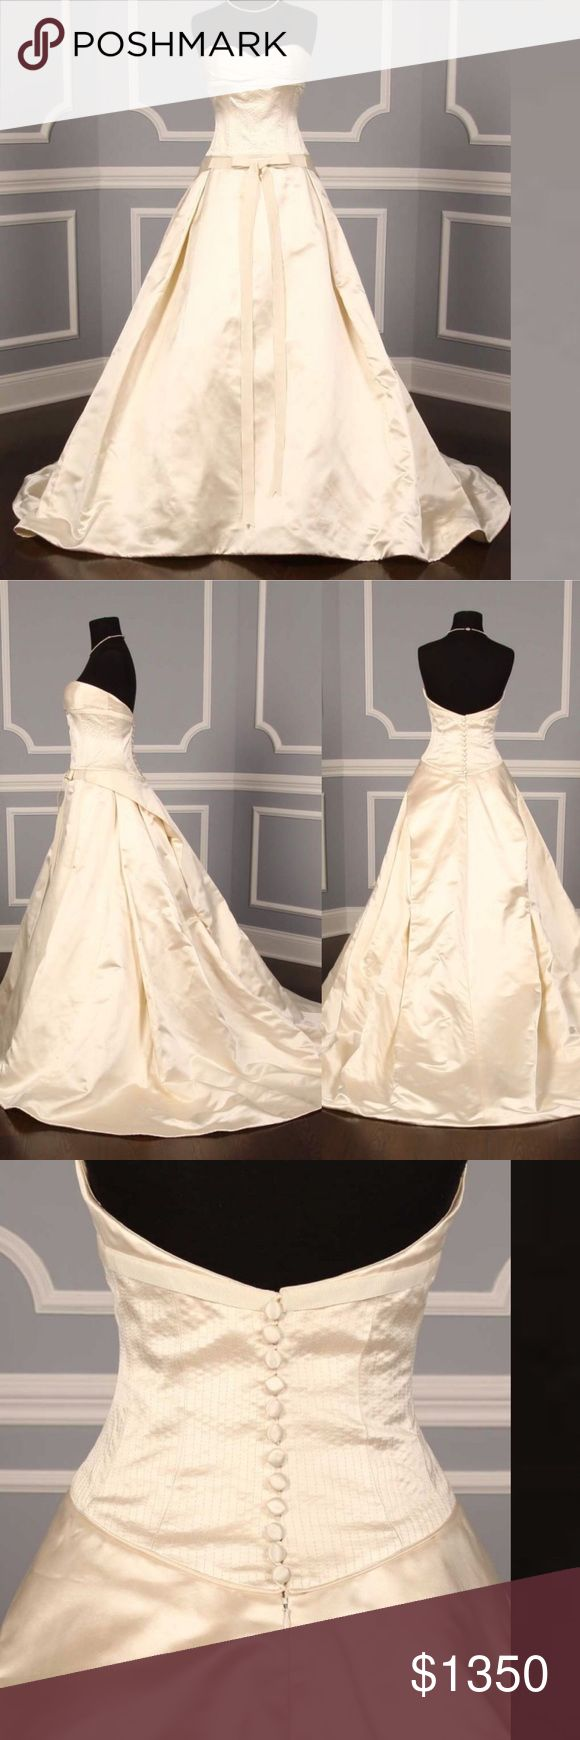 Designer Peter Langner Wedding Gown This 100% Authentic Peter Langner Notre Dame couture bridal gown is truly an incredible gown to wear on your wedding day. The Italian silk satin fabric is so luxurious to the touch & the detail on the bodice is amazing! The bow on the front of the skirt is so feminine! The gown has NEVER been worn to a wedding/event, but it's a sample dress.Feel free to contact me with any questions about the gown SIZE 10 , IVORY color,   Chapel length train , Unaltered…